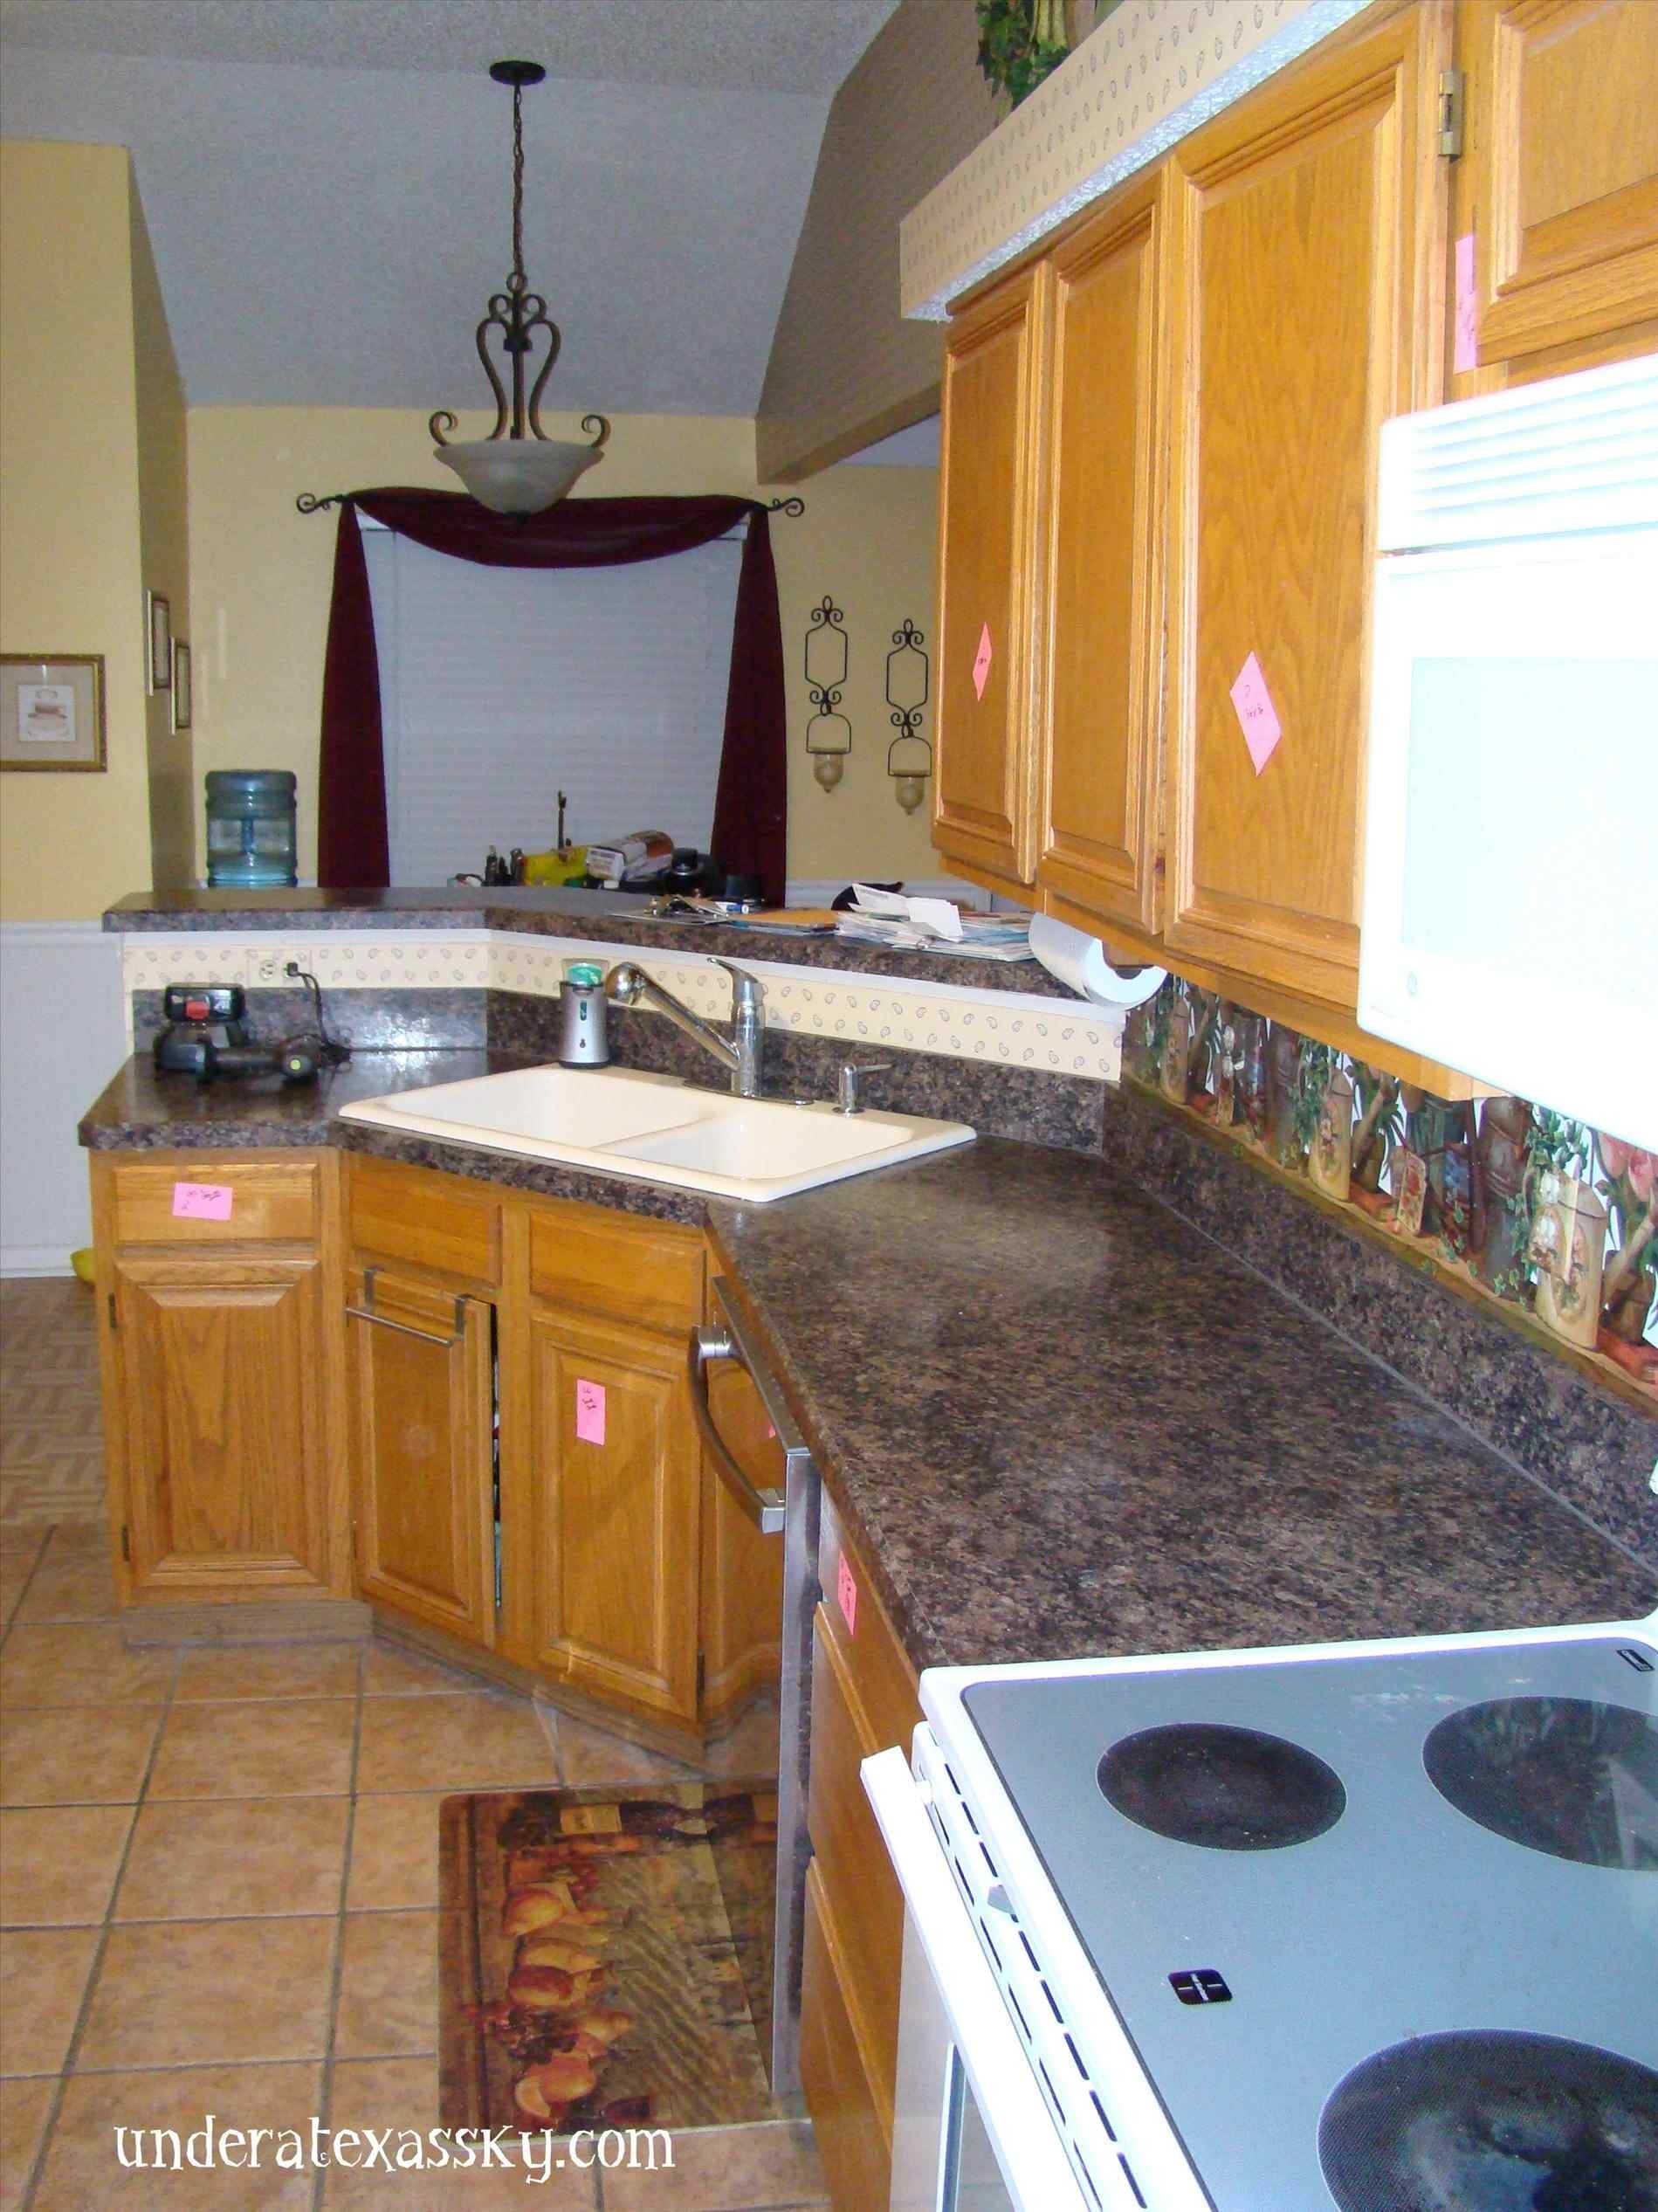 Kitchen Remodel Cabinets Or Countertops First